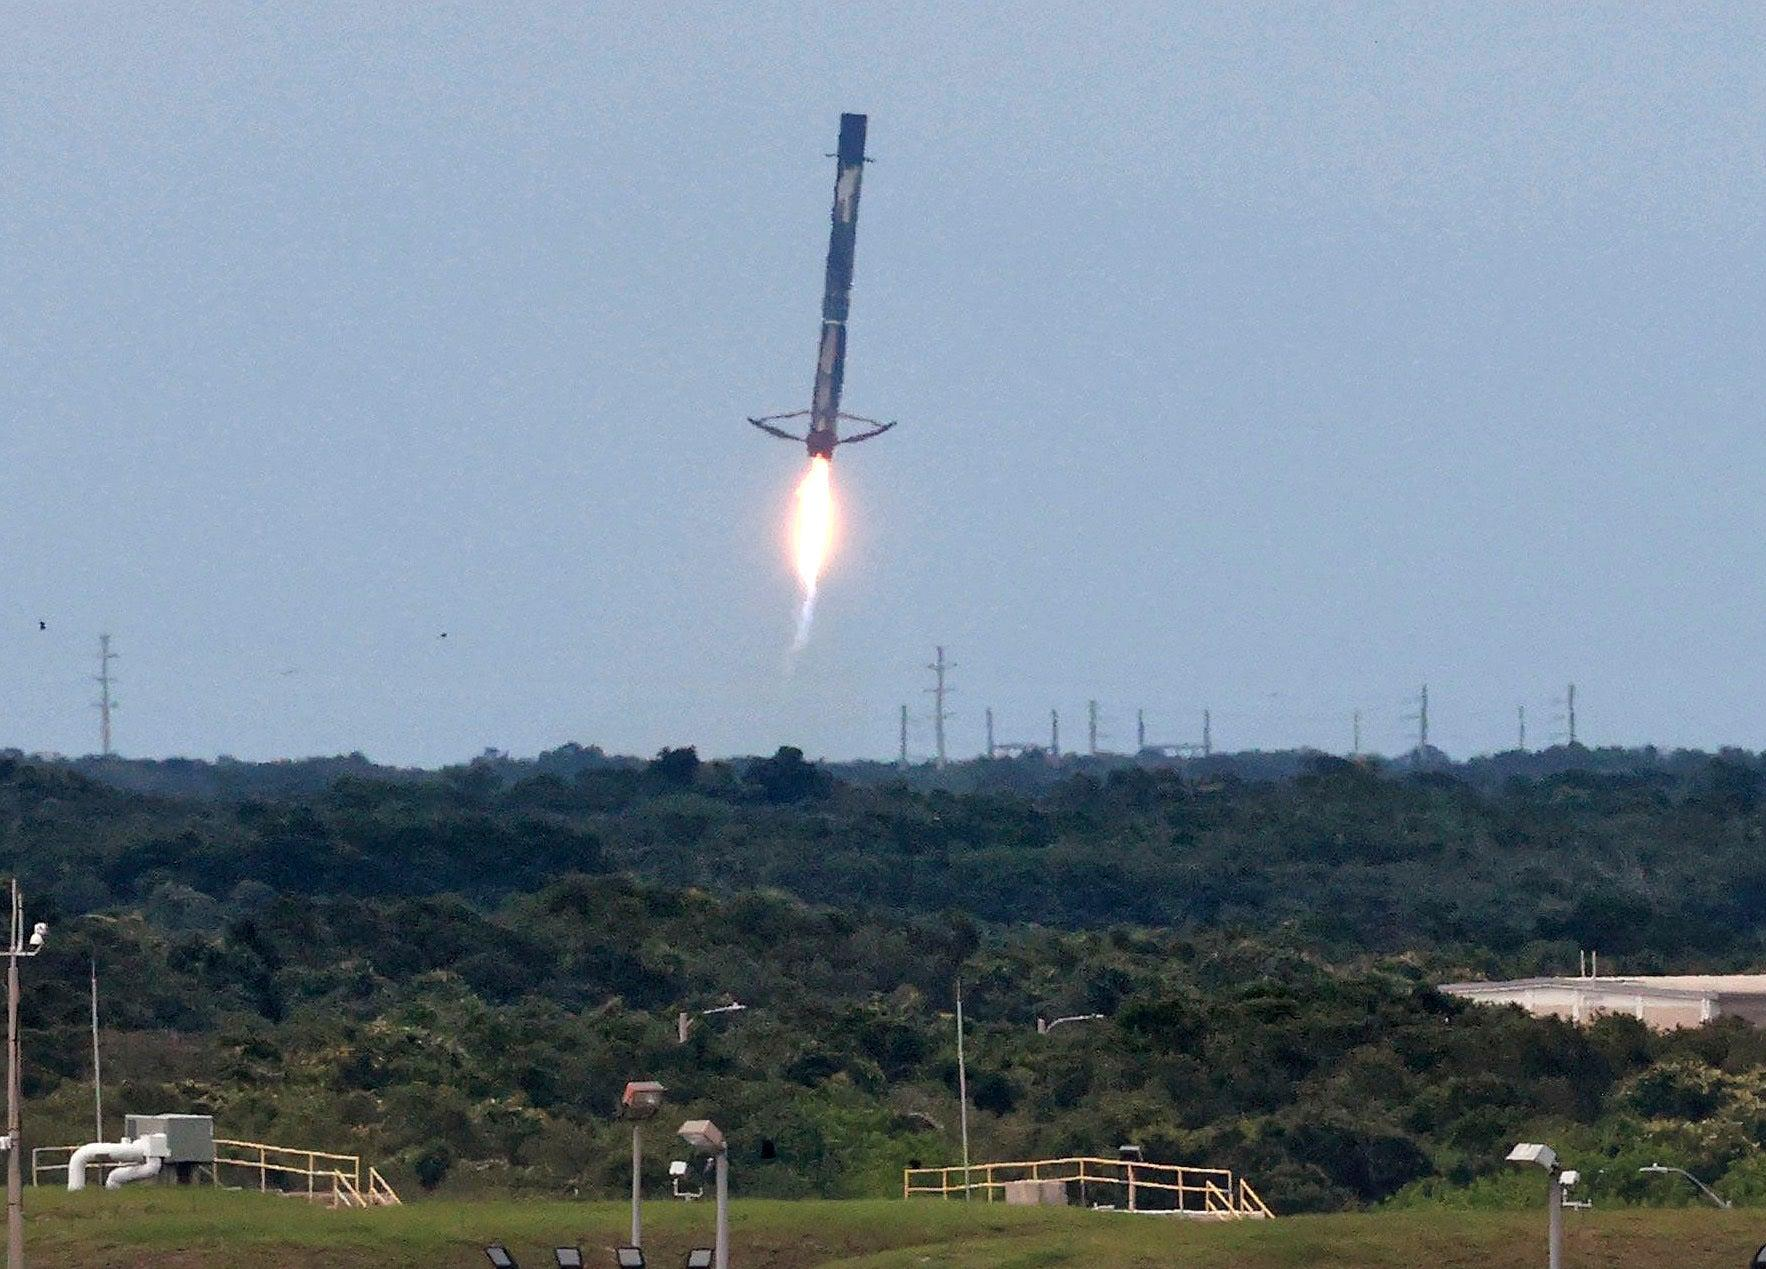 FAA: New tool limits disruptions caused by space operations